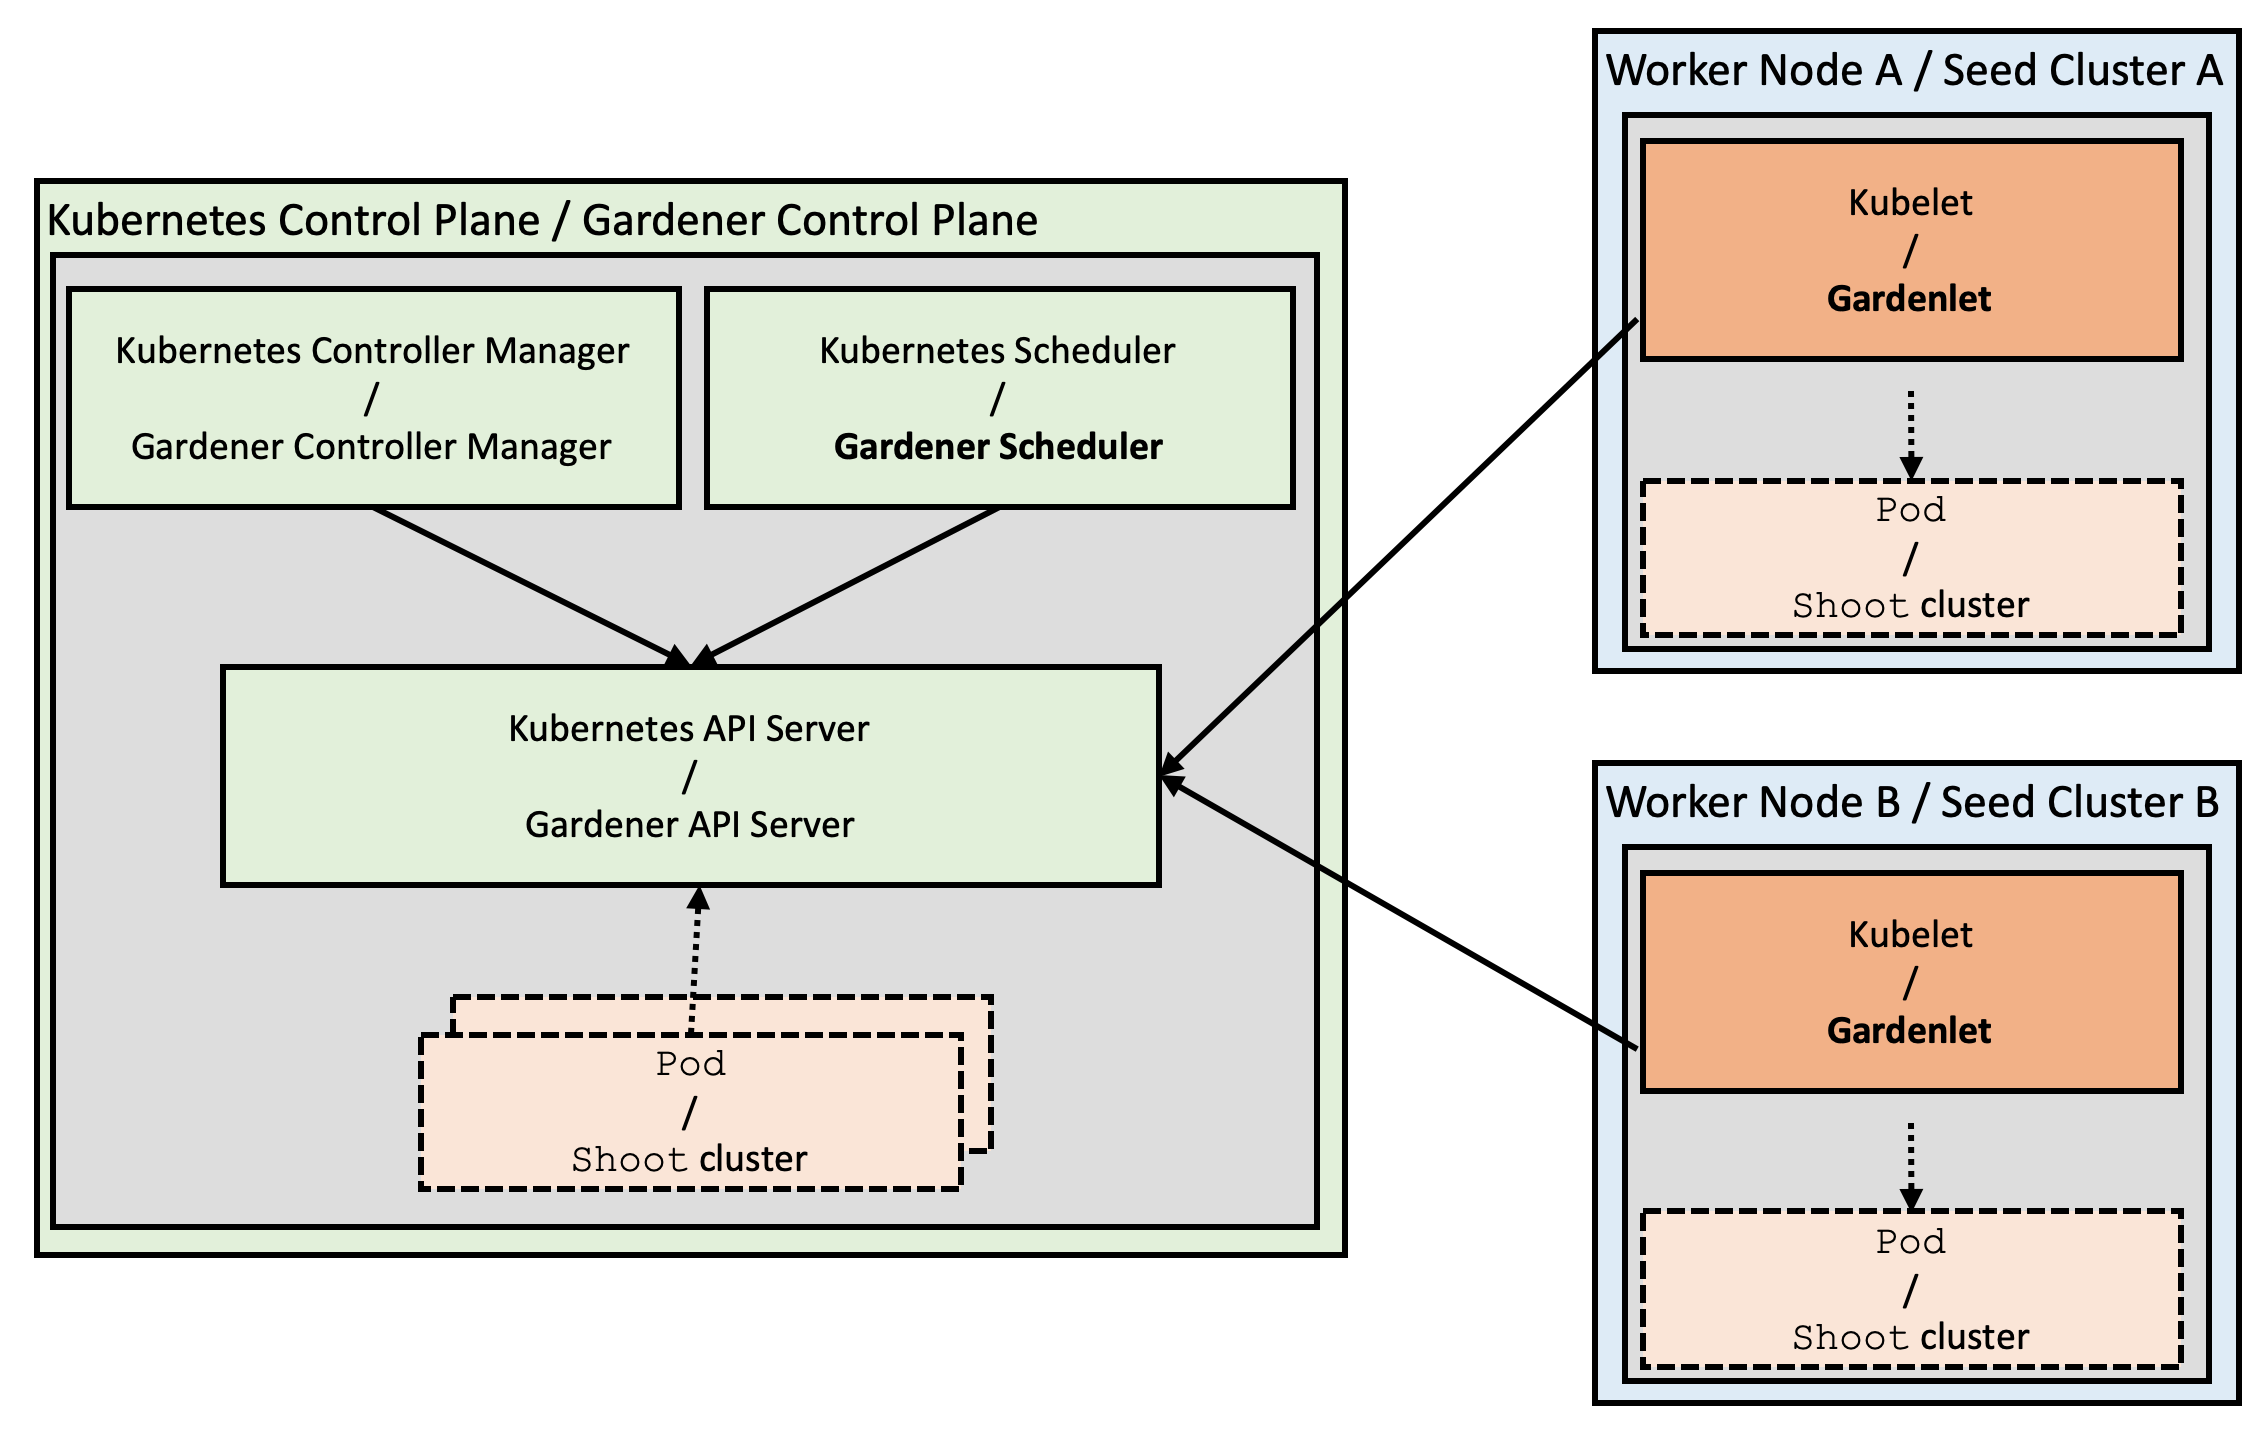 Similarities between Kubernetes and Gardener architecture